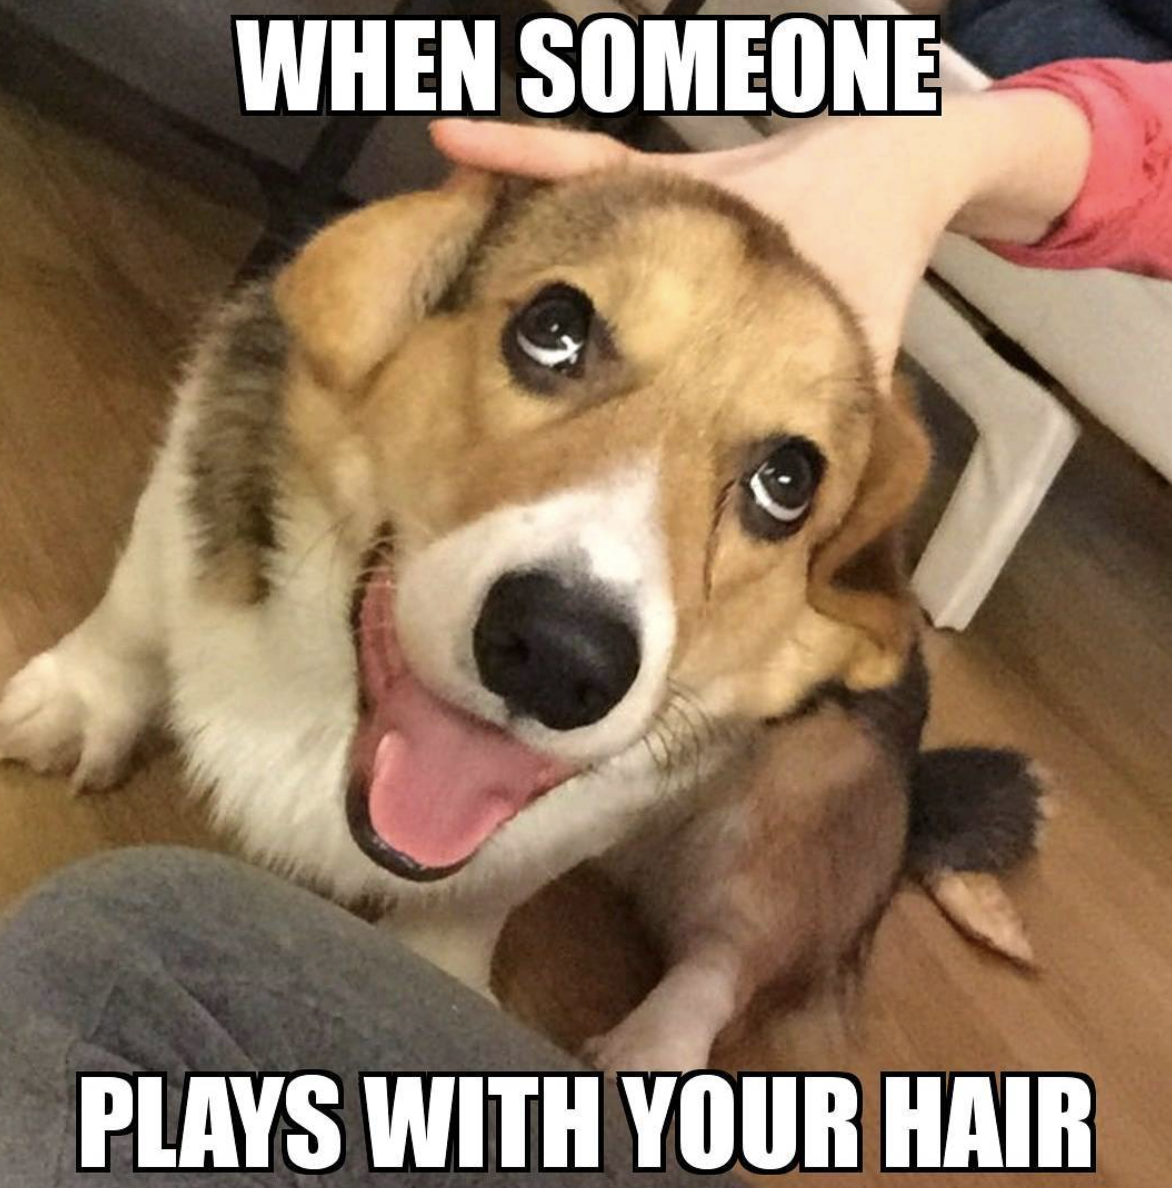 Dog petting meme